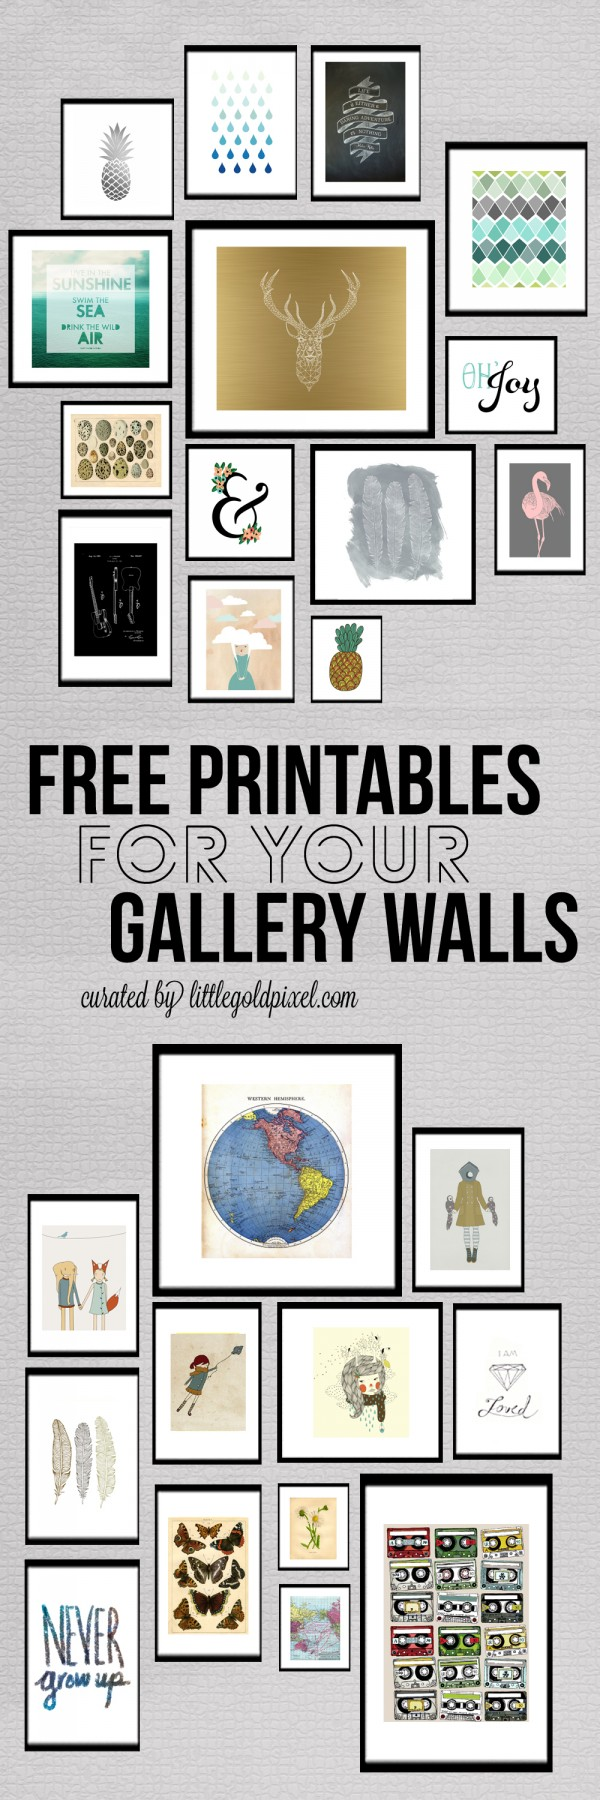 Wall Art Prints Download : Roundup free printables for gallery walls little gold pixel